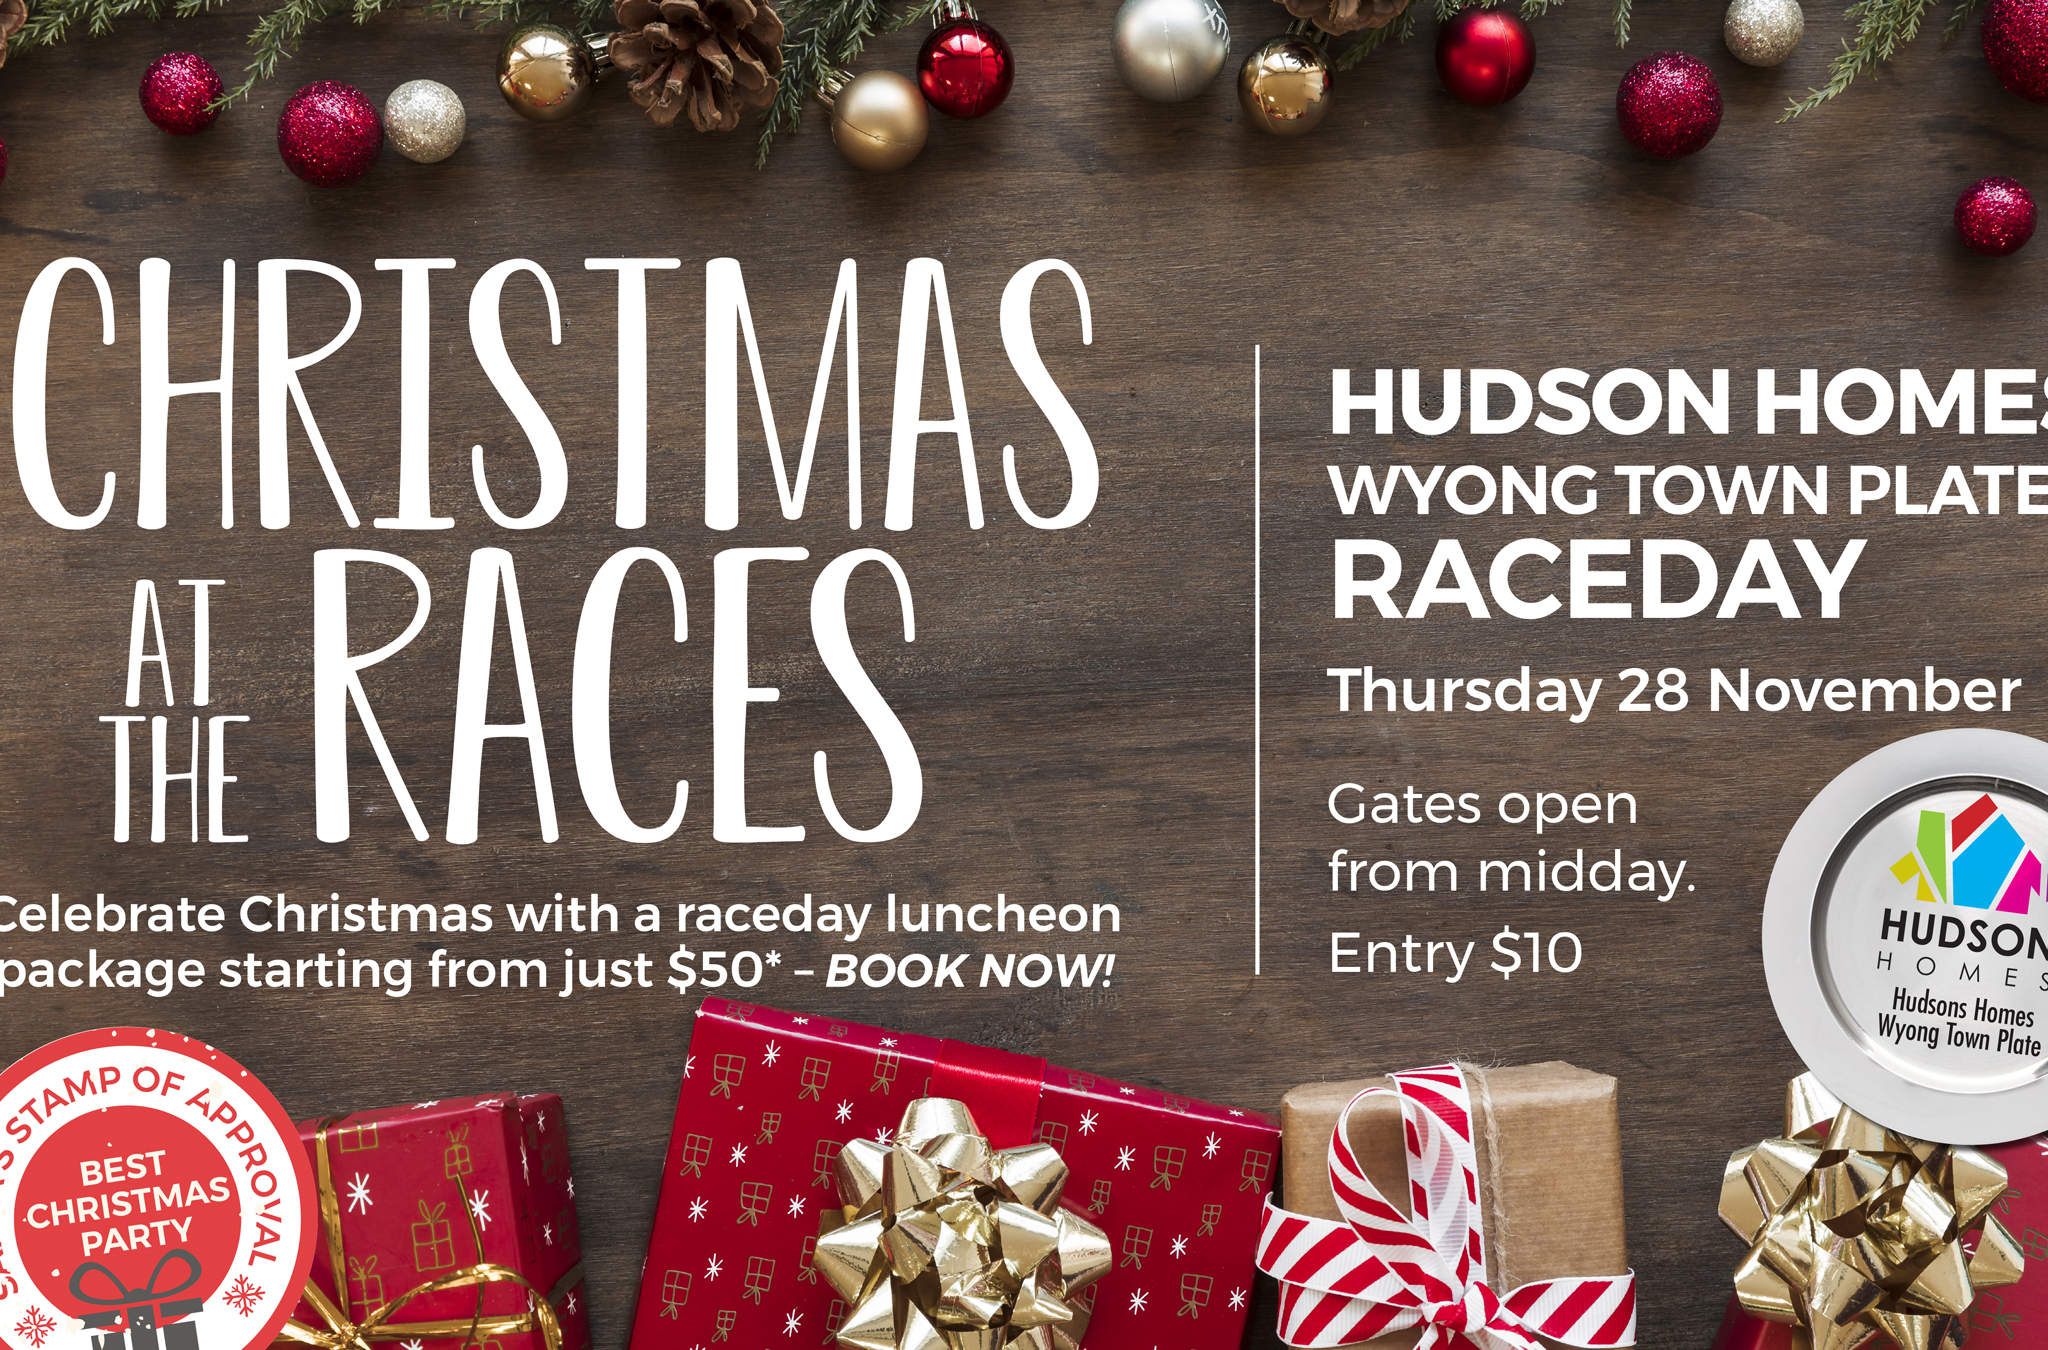 Hudson Homes Wyong Town Plate